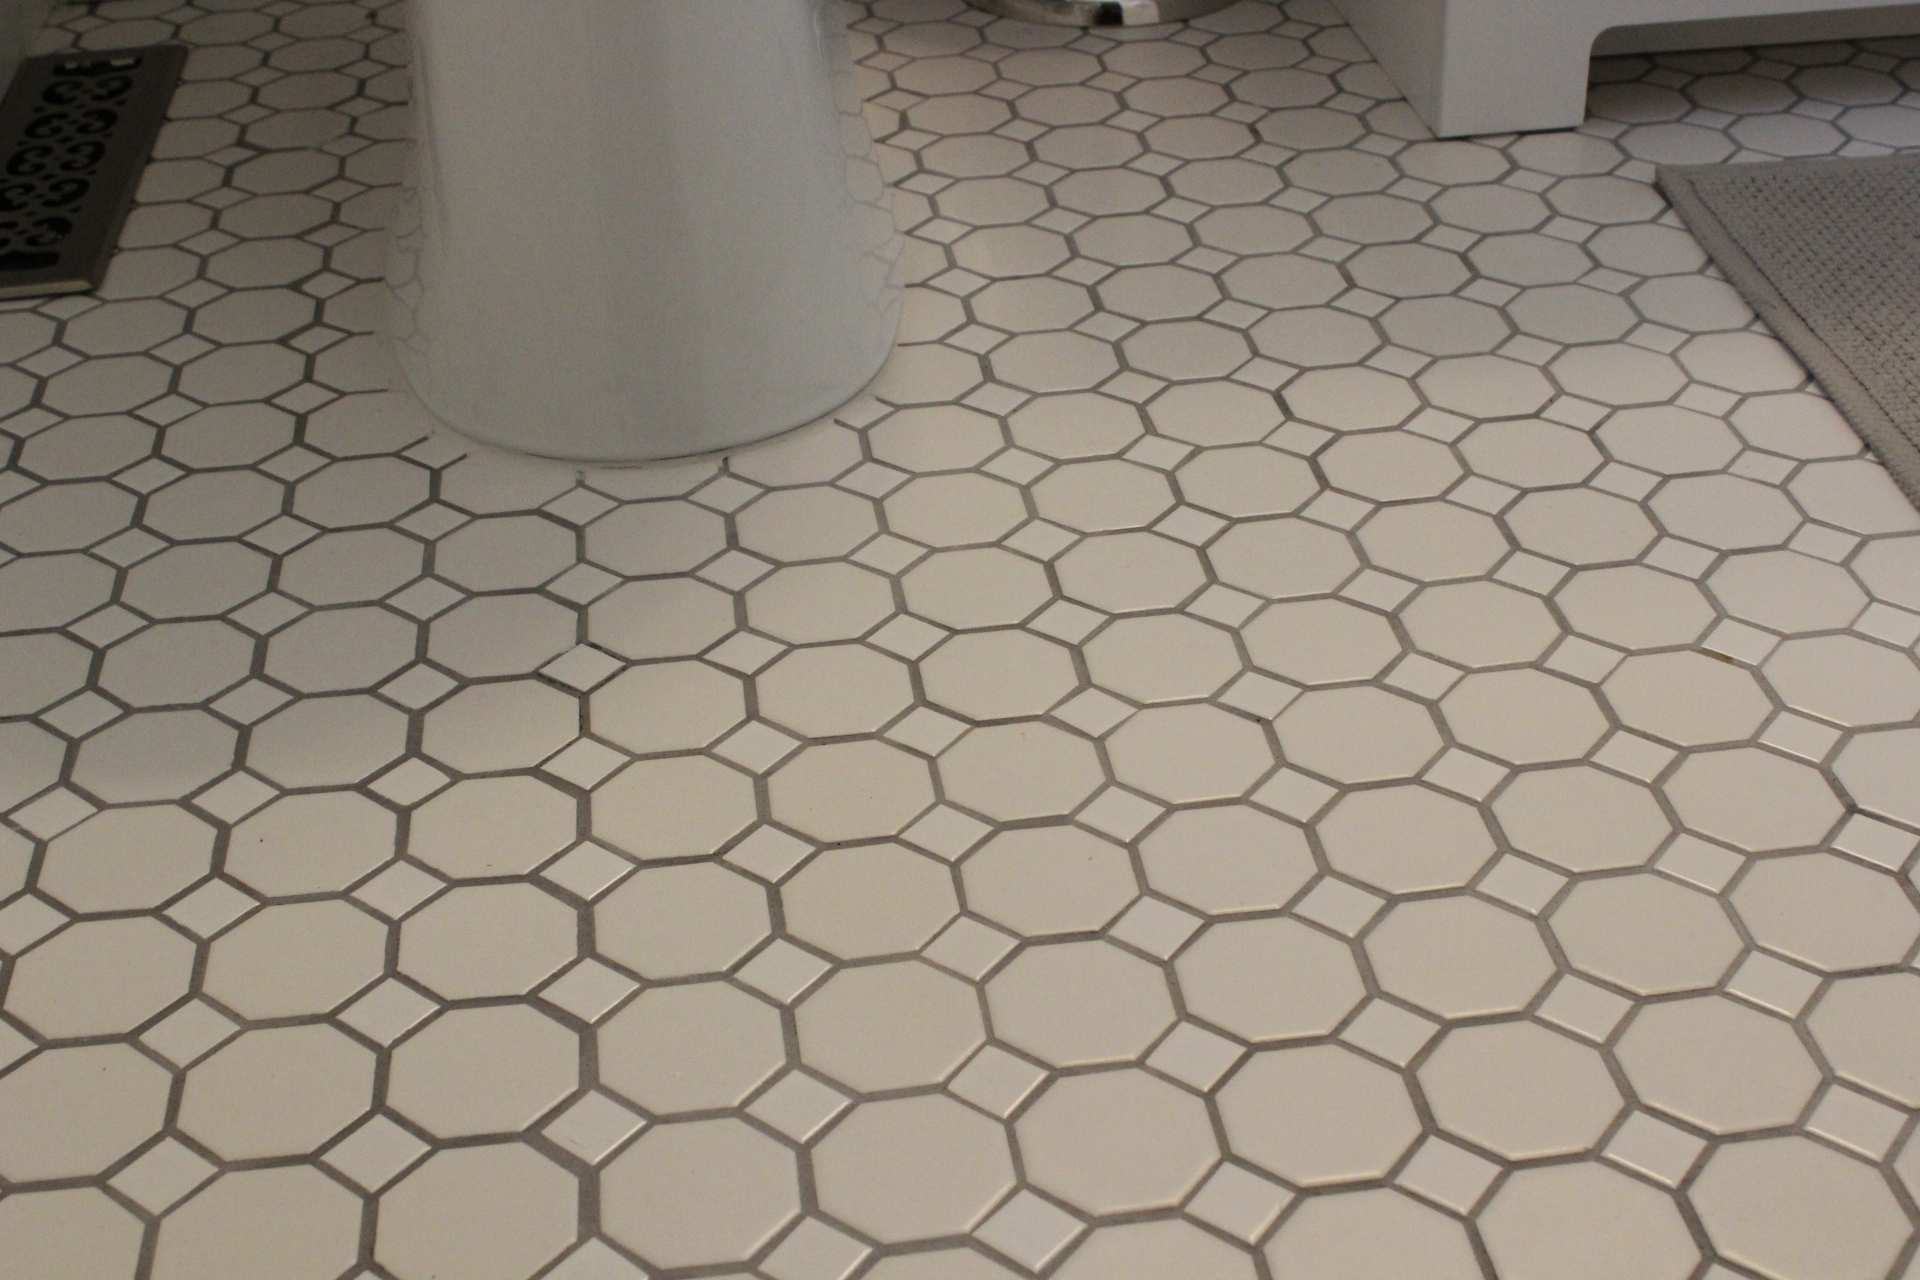 White Octagon Tile With Dark Gray Grout Img 5531